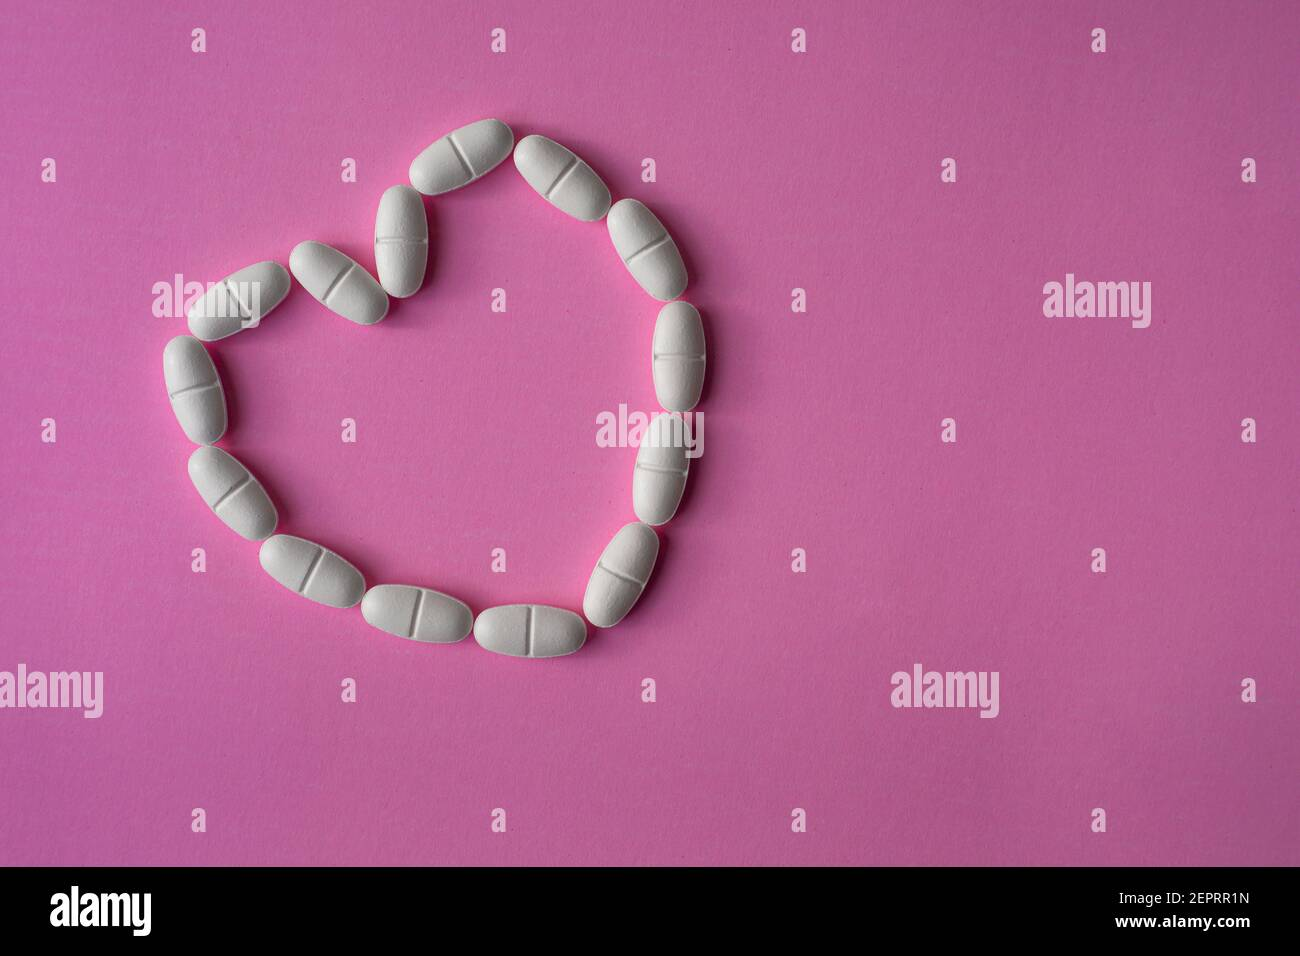 White, large pills or tablets, arranged in a heart shape to represent health on pink background Stock Photo